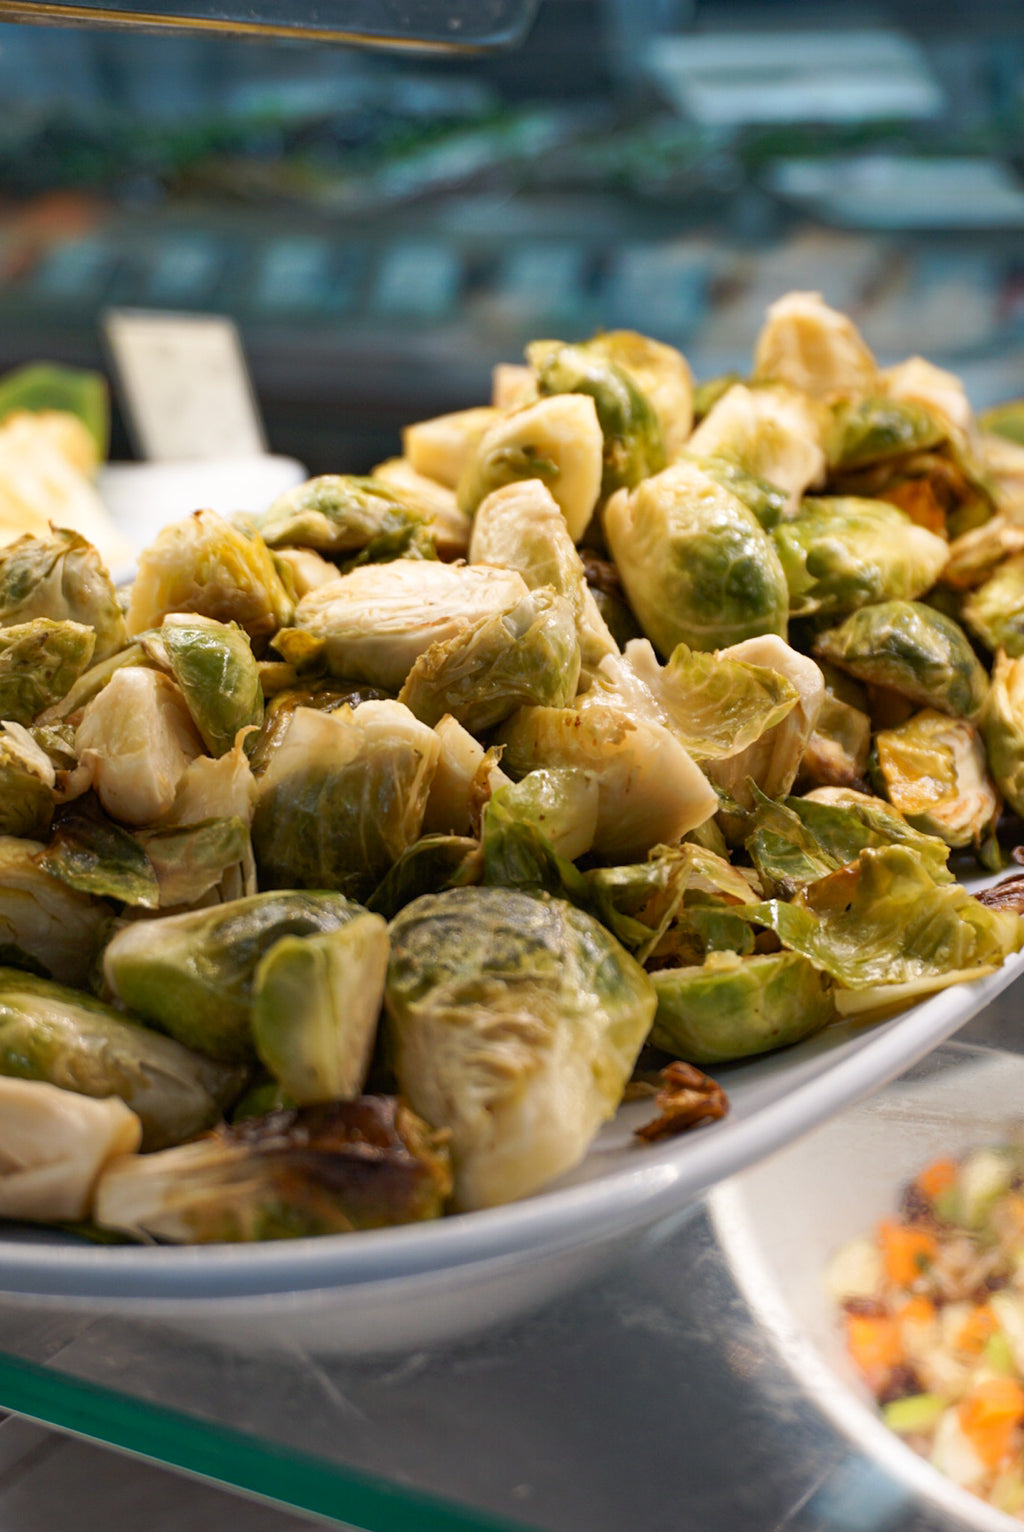 Roasted Brussel Sprouts - Delivery